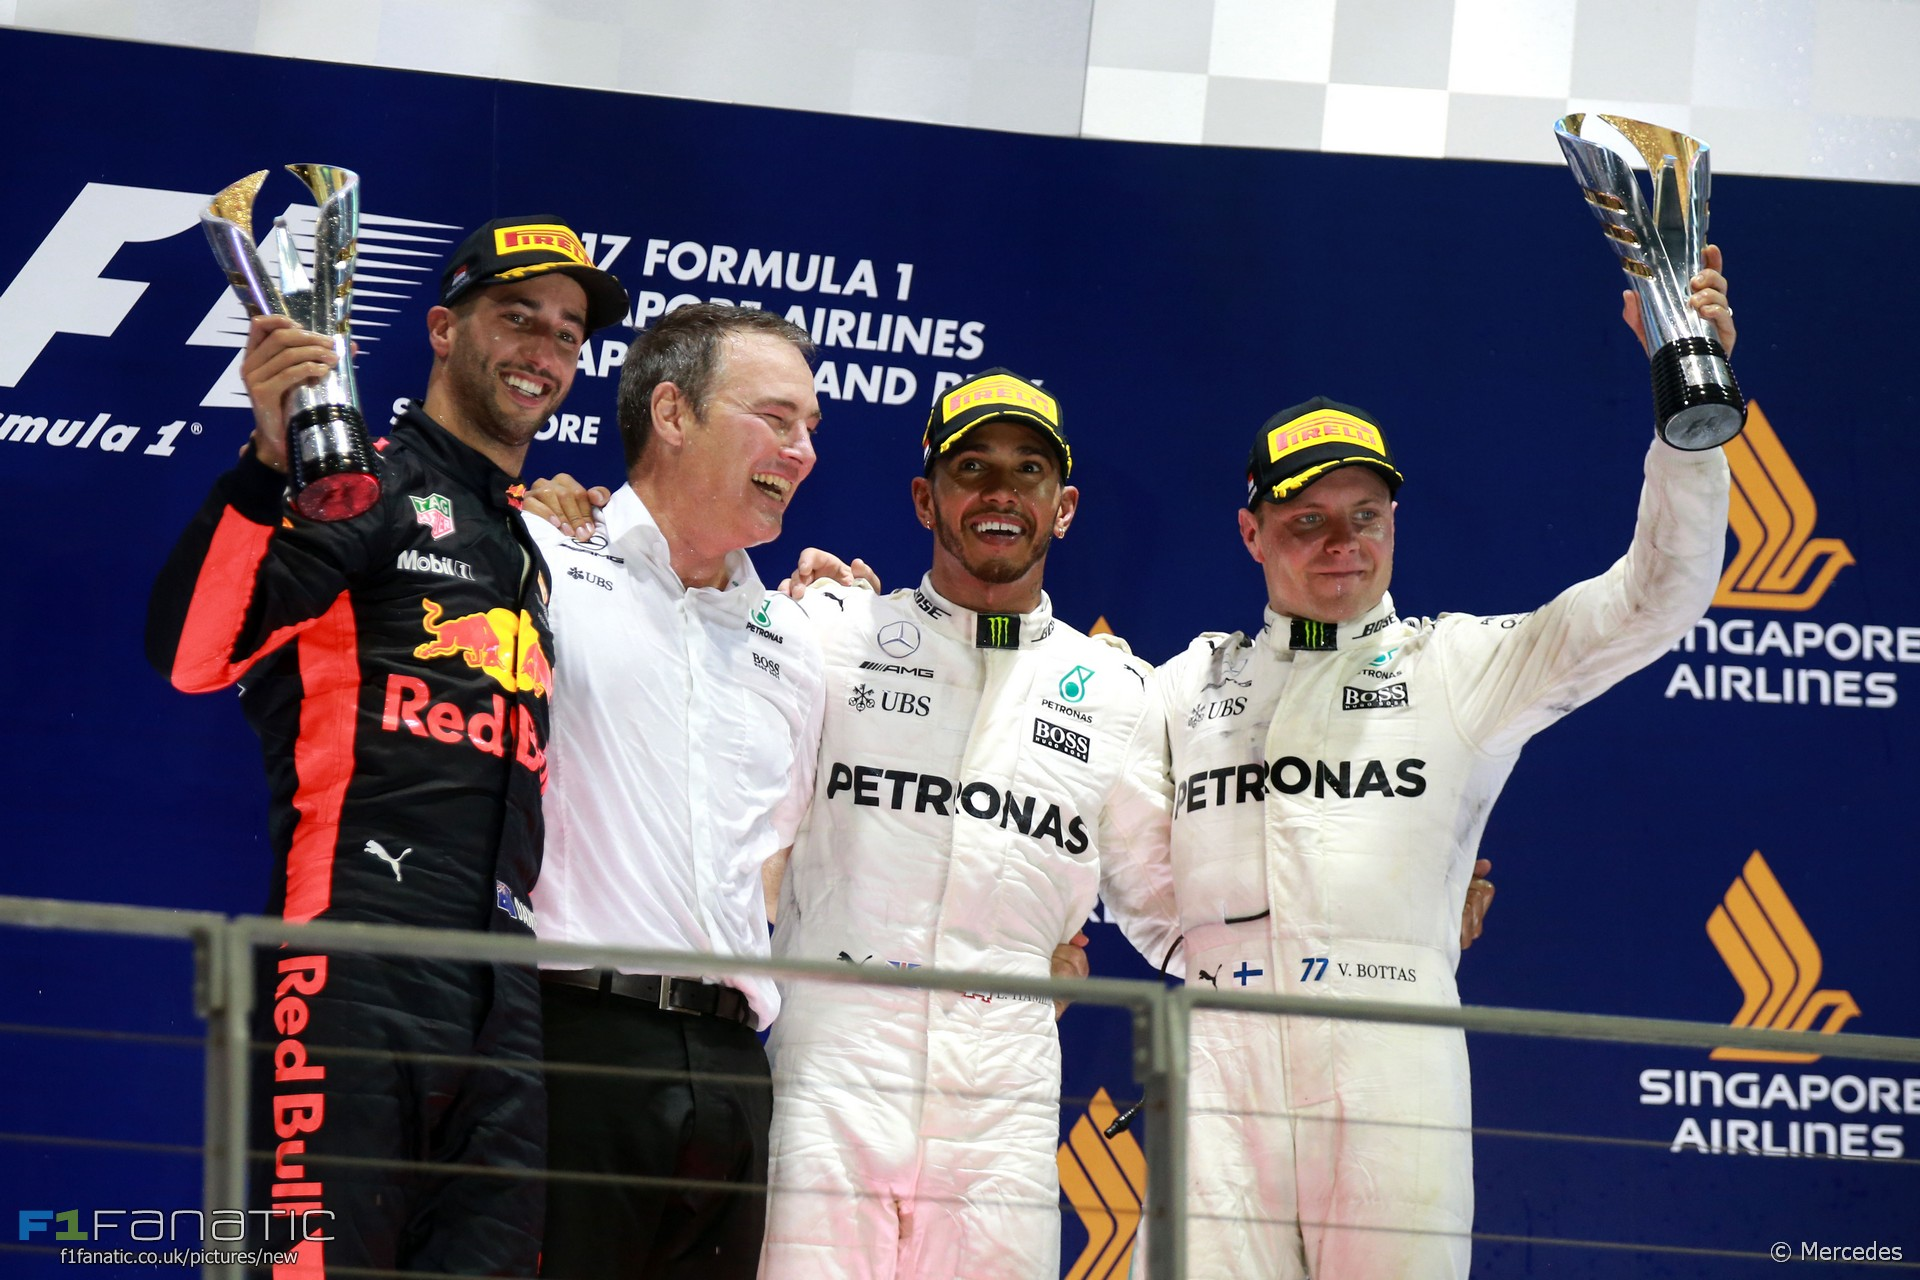 f1 results - photo #30